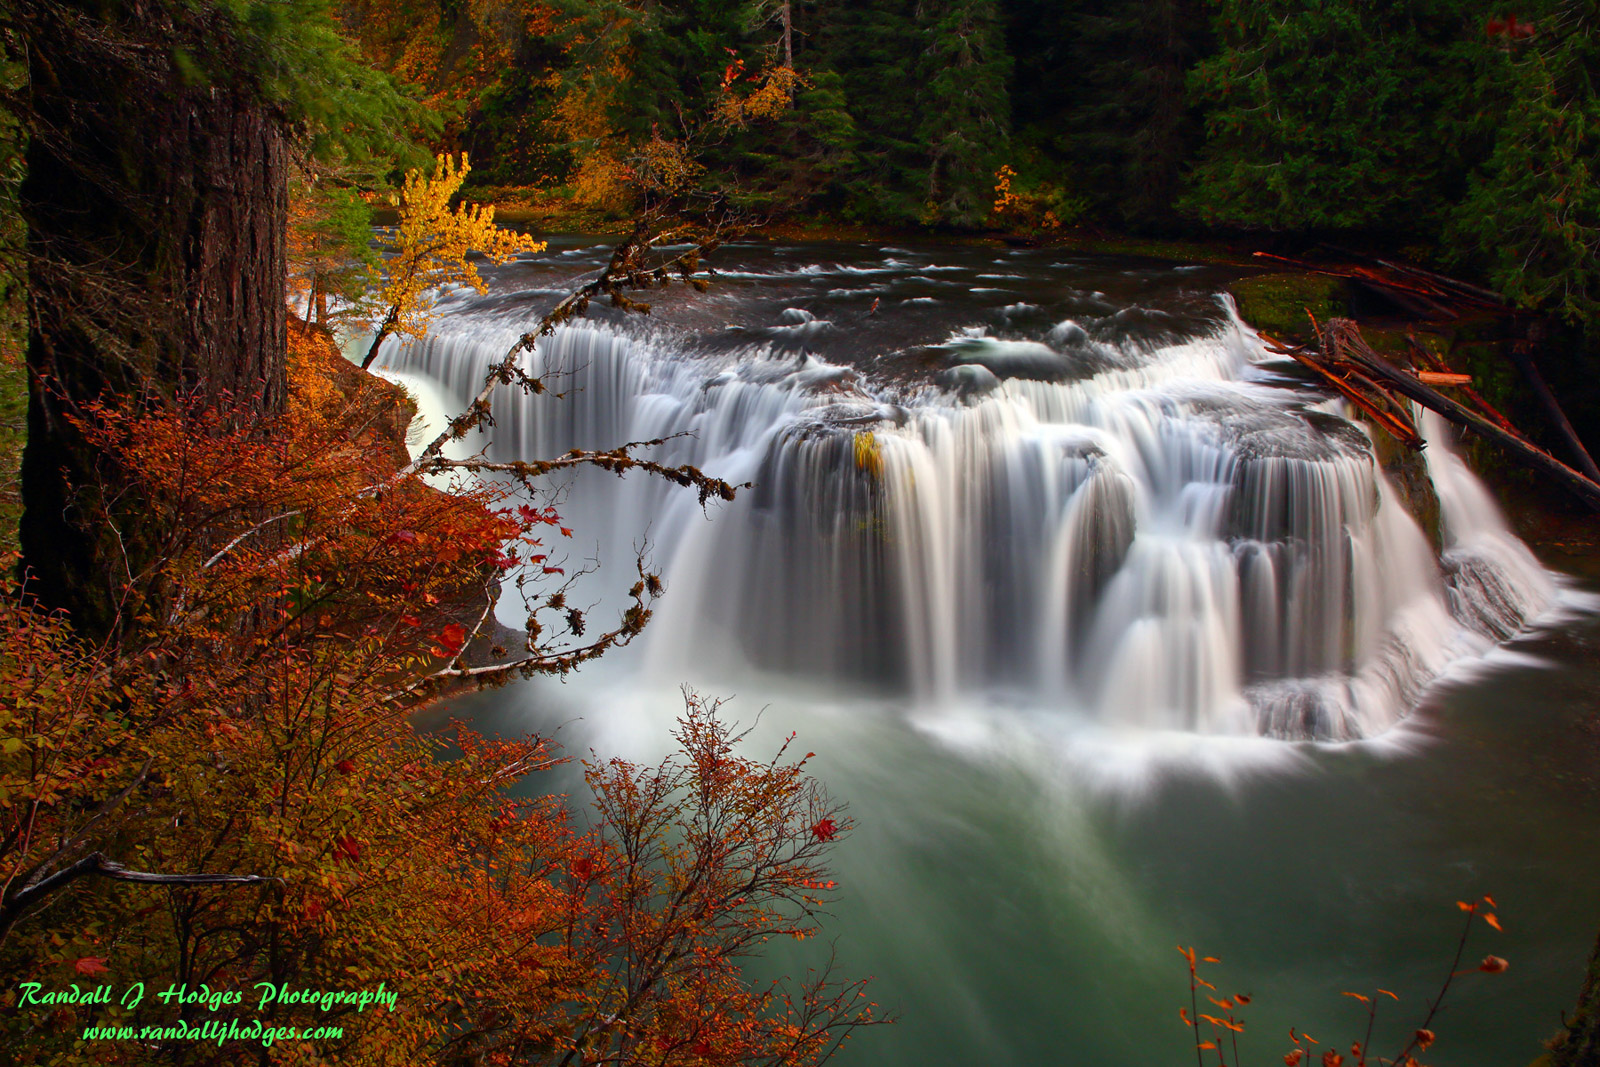 Autumn Color, Autumn Foilage, Cascade Mountains, Cascades, Destination, Fall Color, Fall Foilage, Gifford Pinchot National Forest, Lewis River, Lewis River Falls, Log Jam, Lower Lewis River Falls, Sou, photo